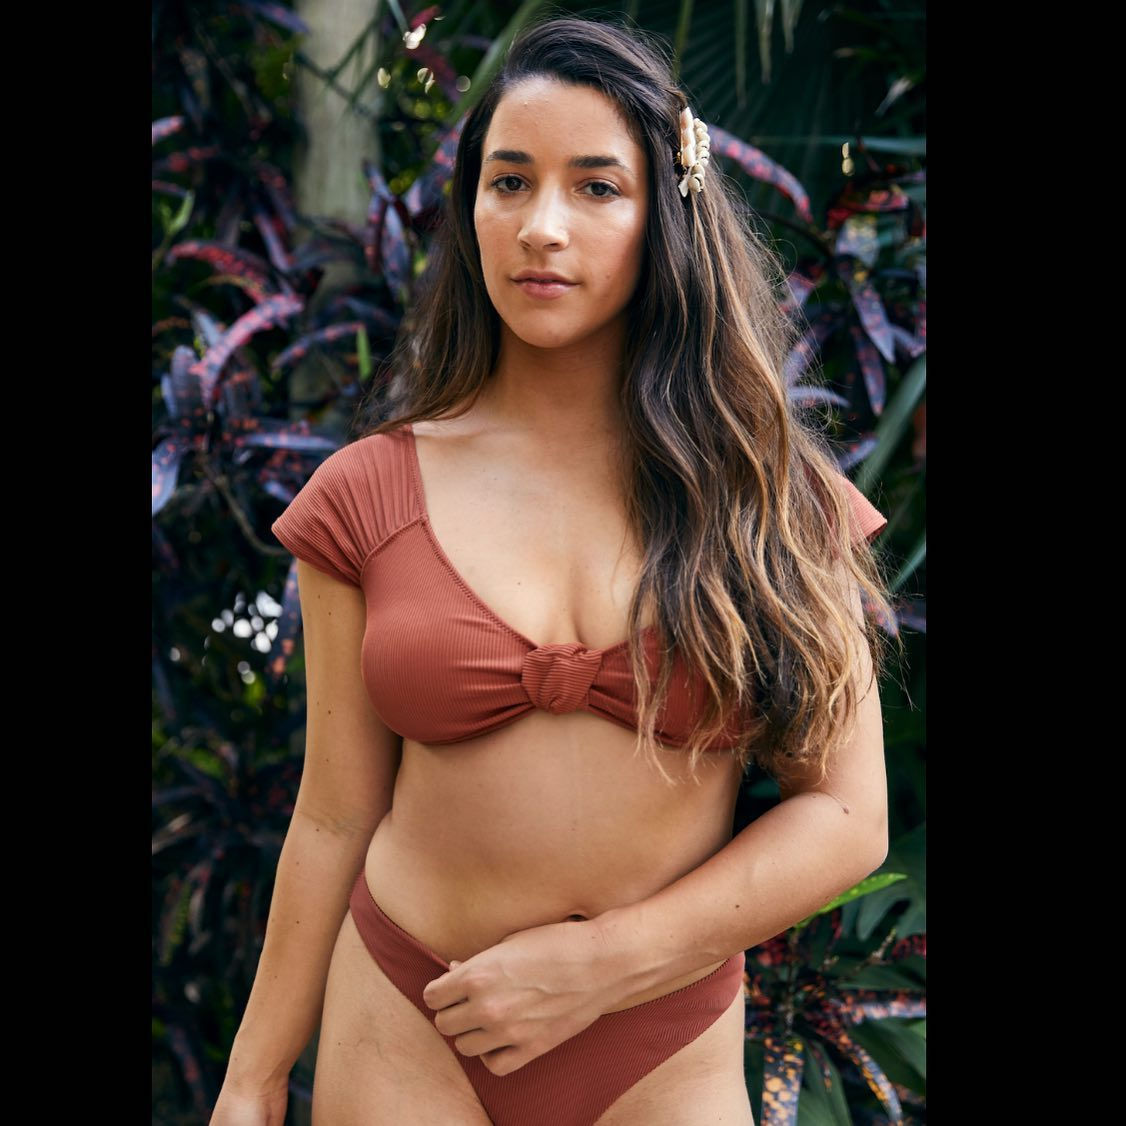 Alexandra Raisman - Social medis photos